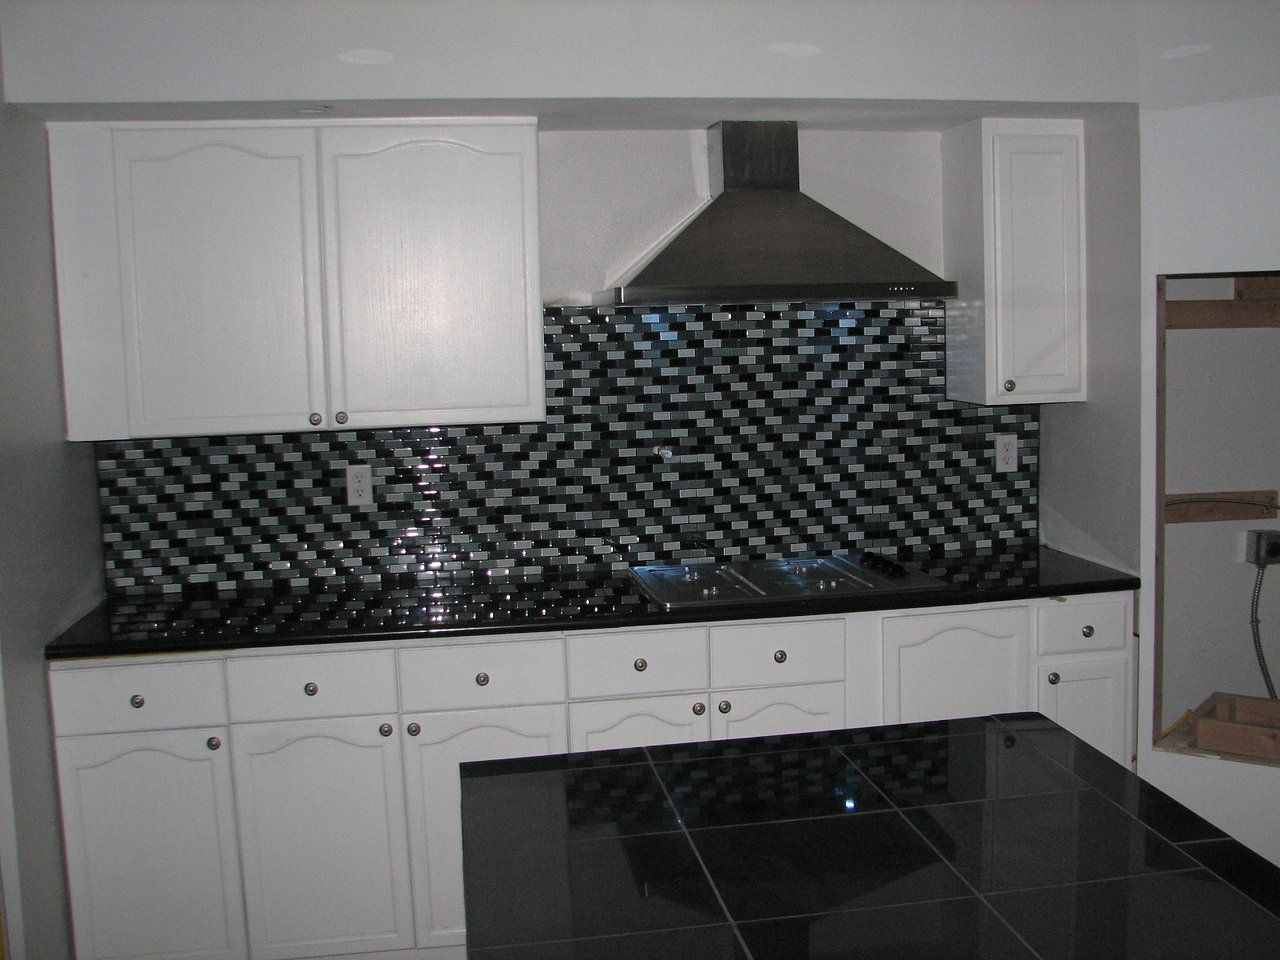 black kitchen countertops Kitchen Countertops finished with Absolute Black Lazy Granite Tiles